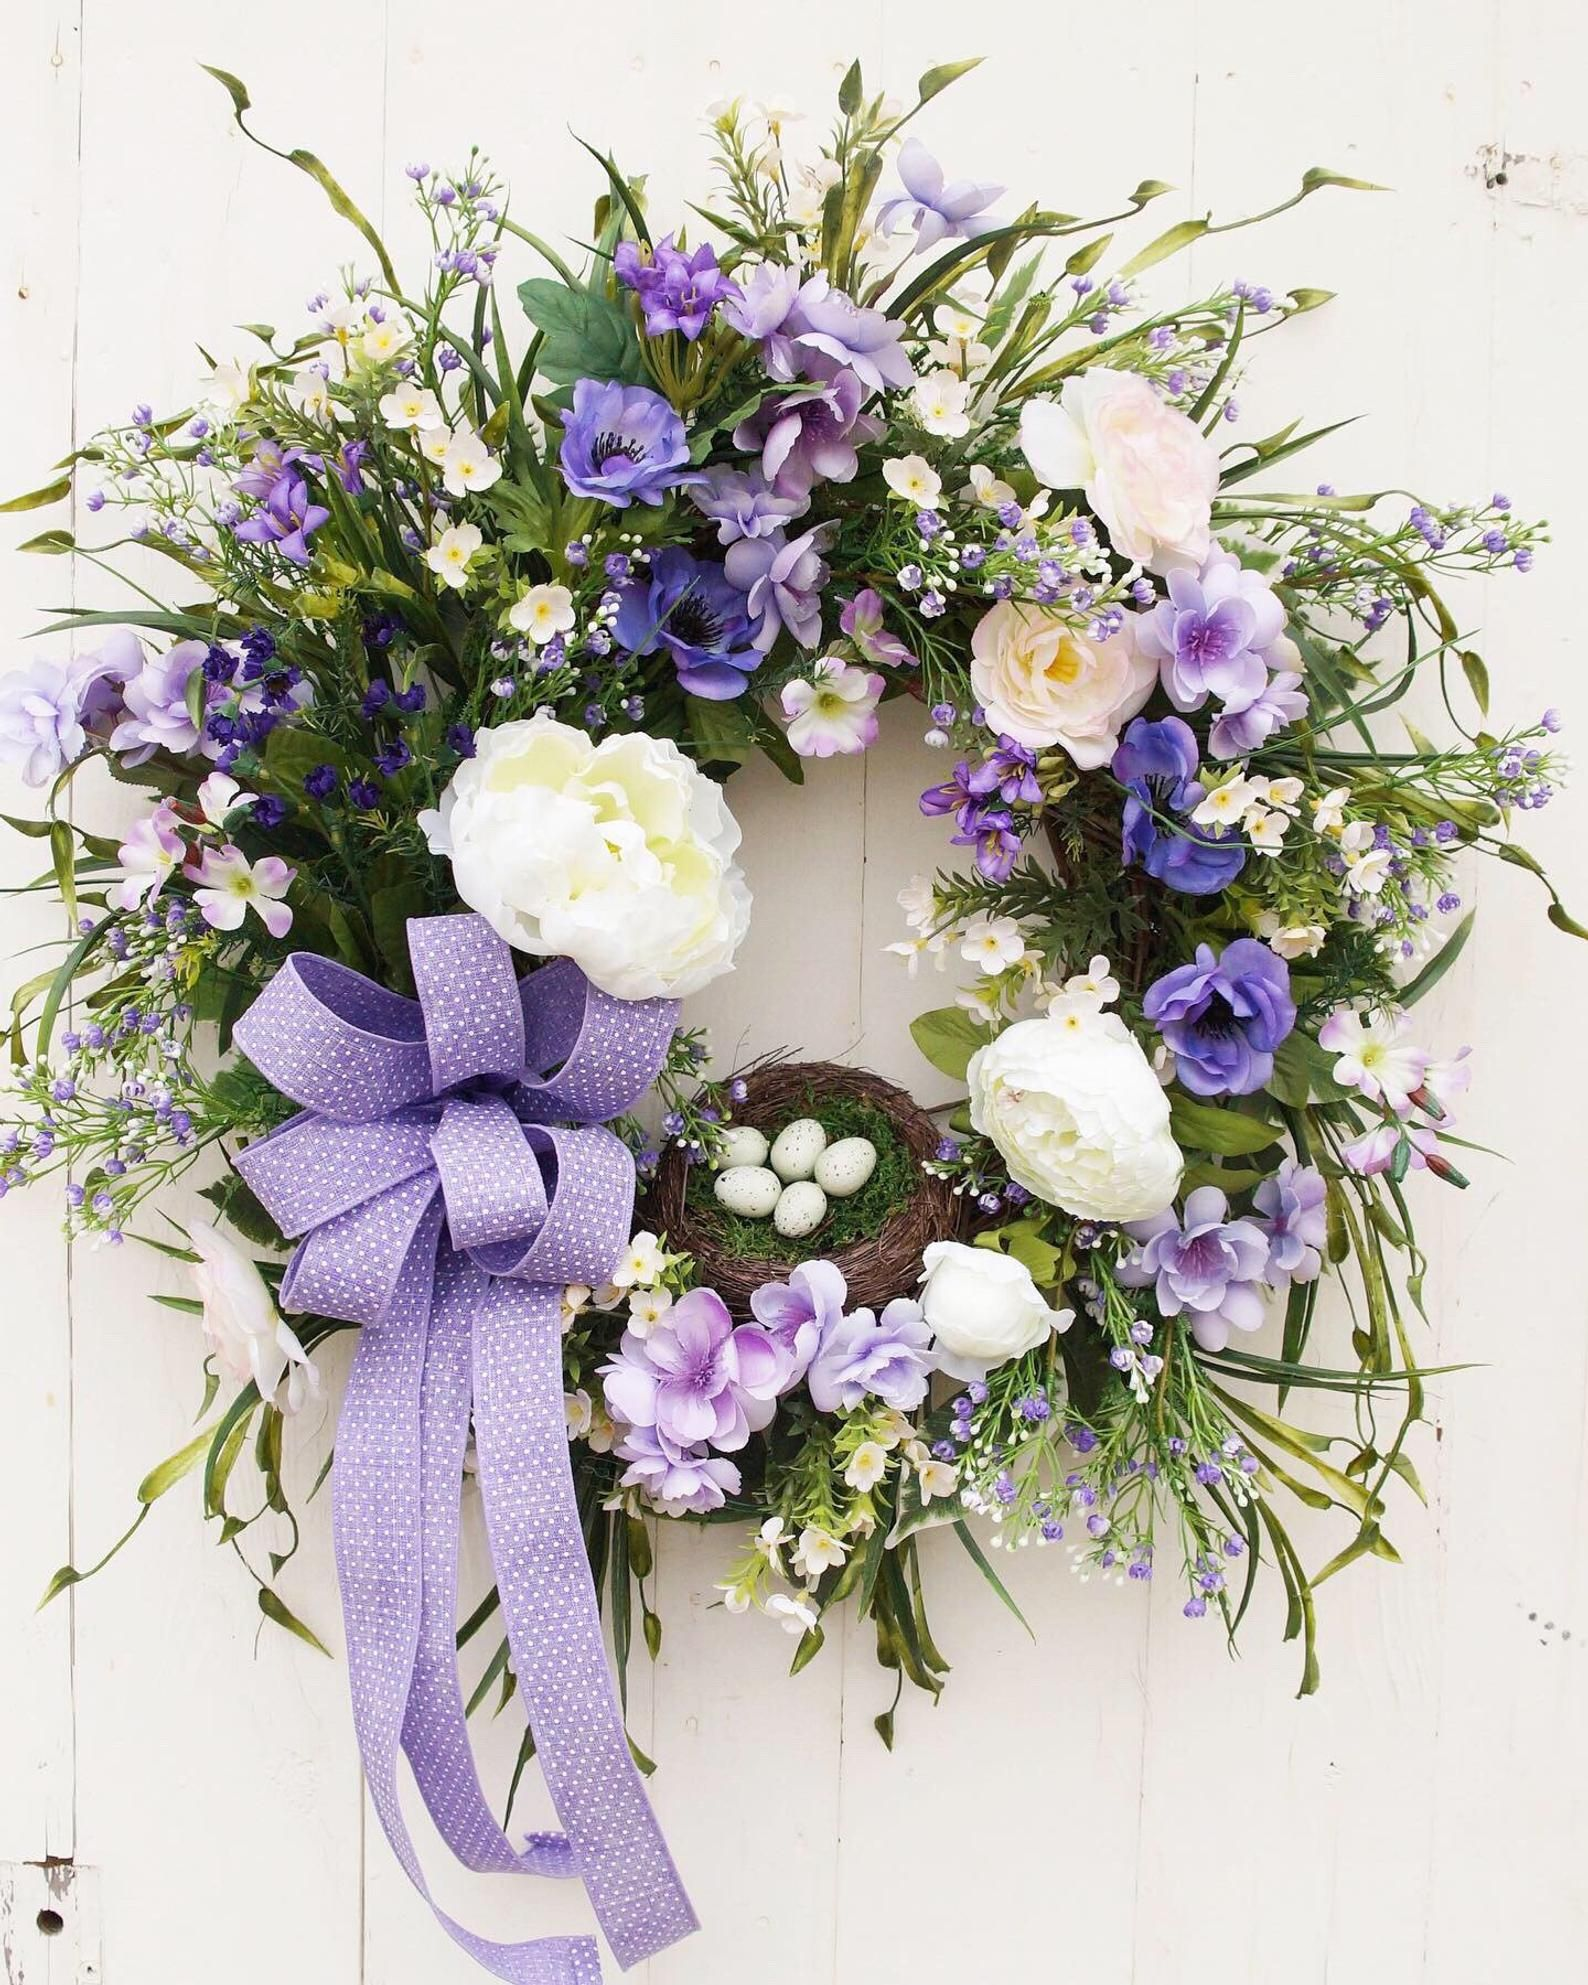 Photo of Purple spring country house wreath for front door, spring flower garden wreath, southern wreath for spring, farmhouse style home decor